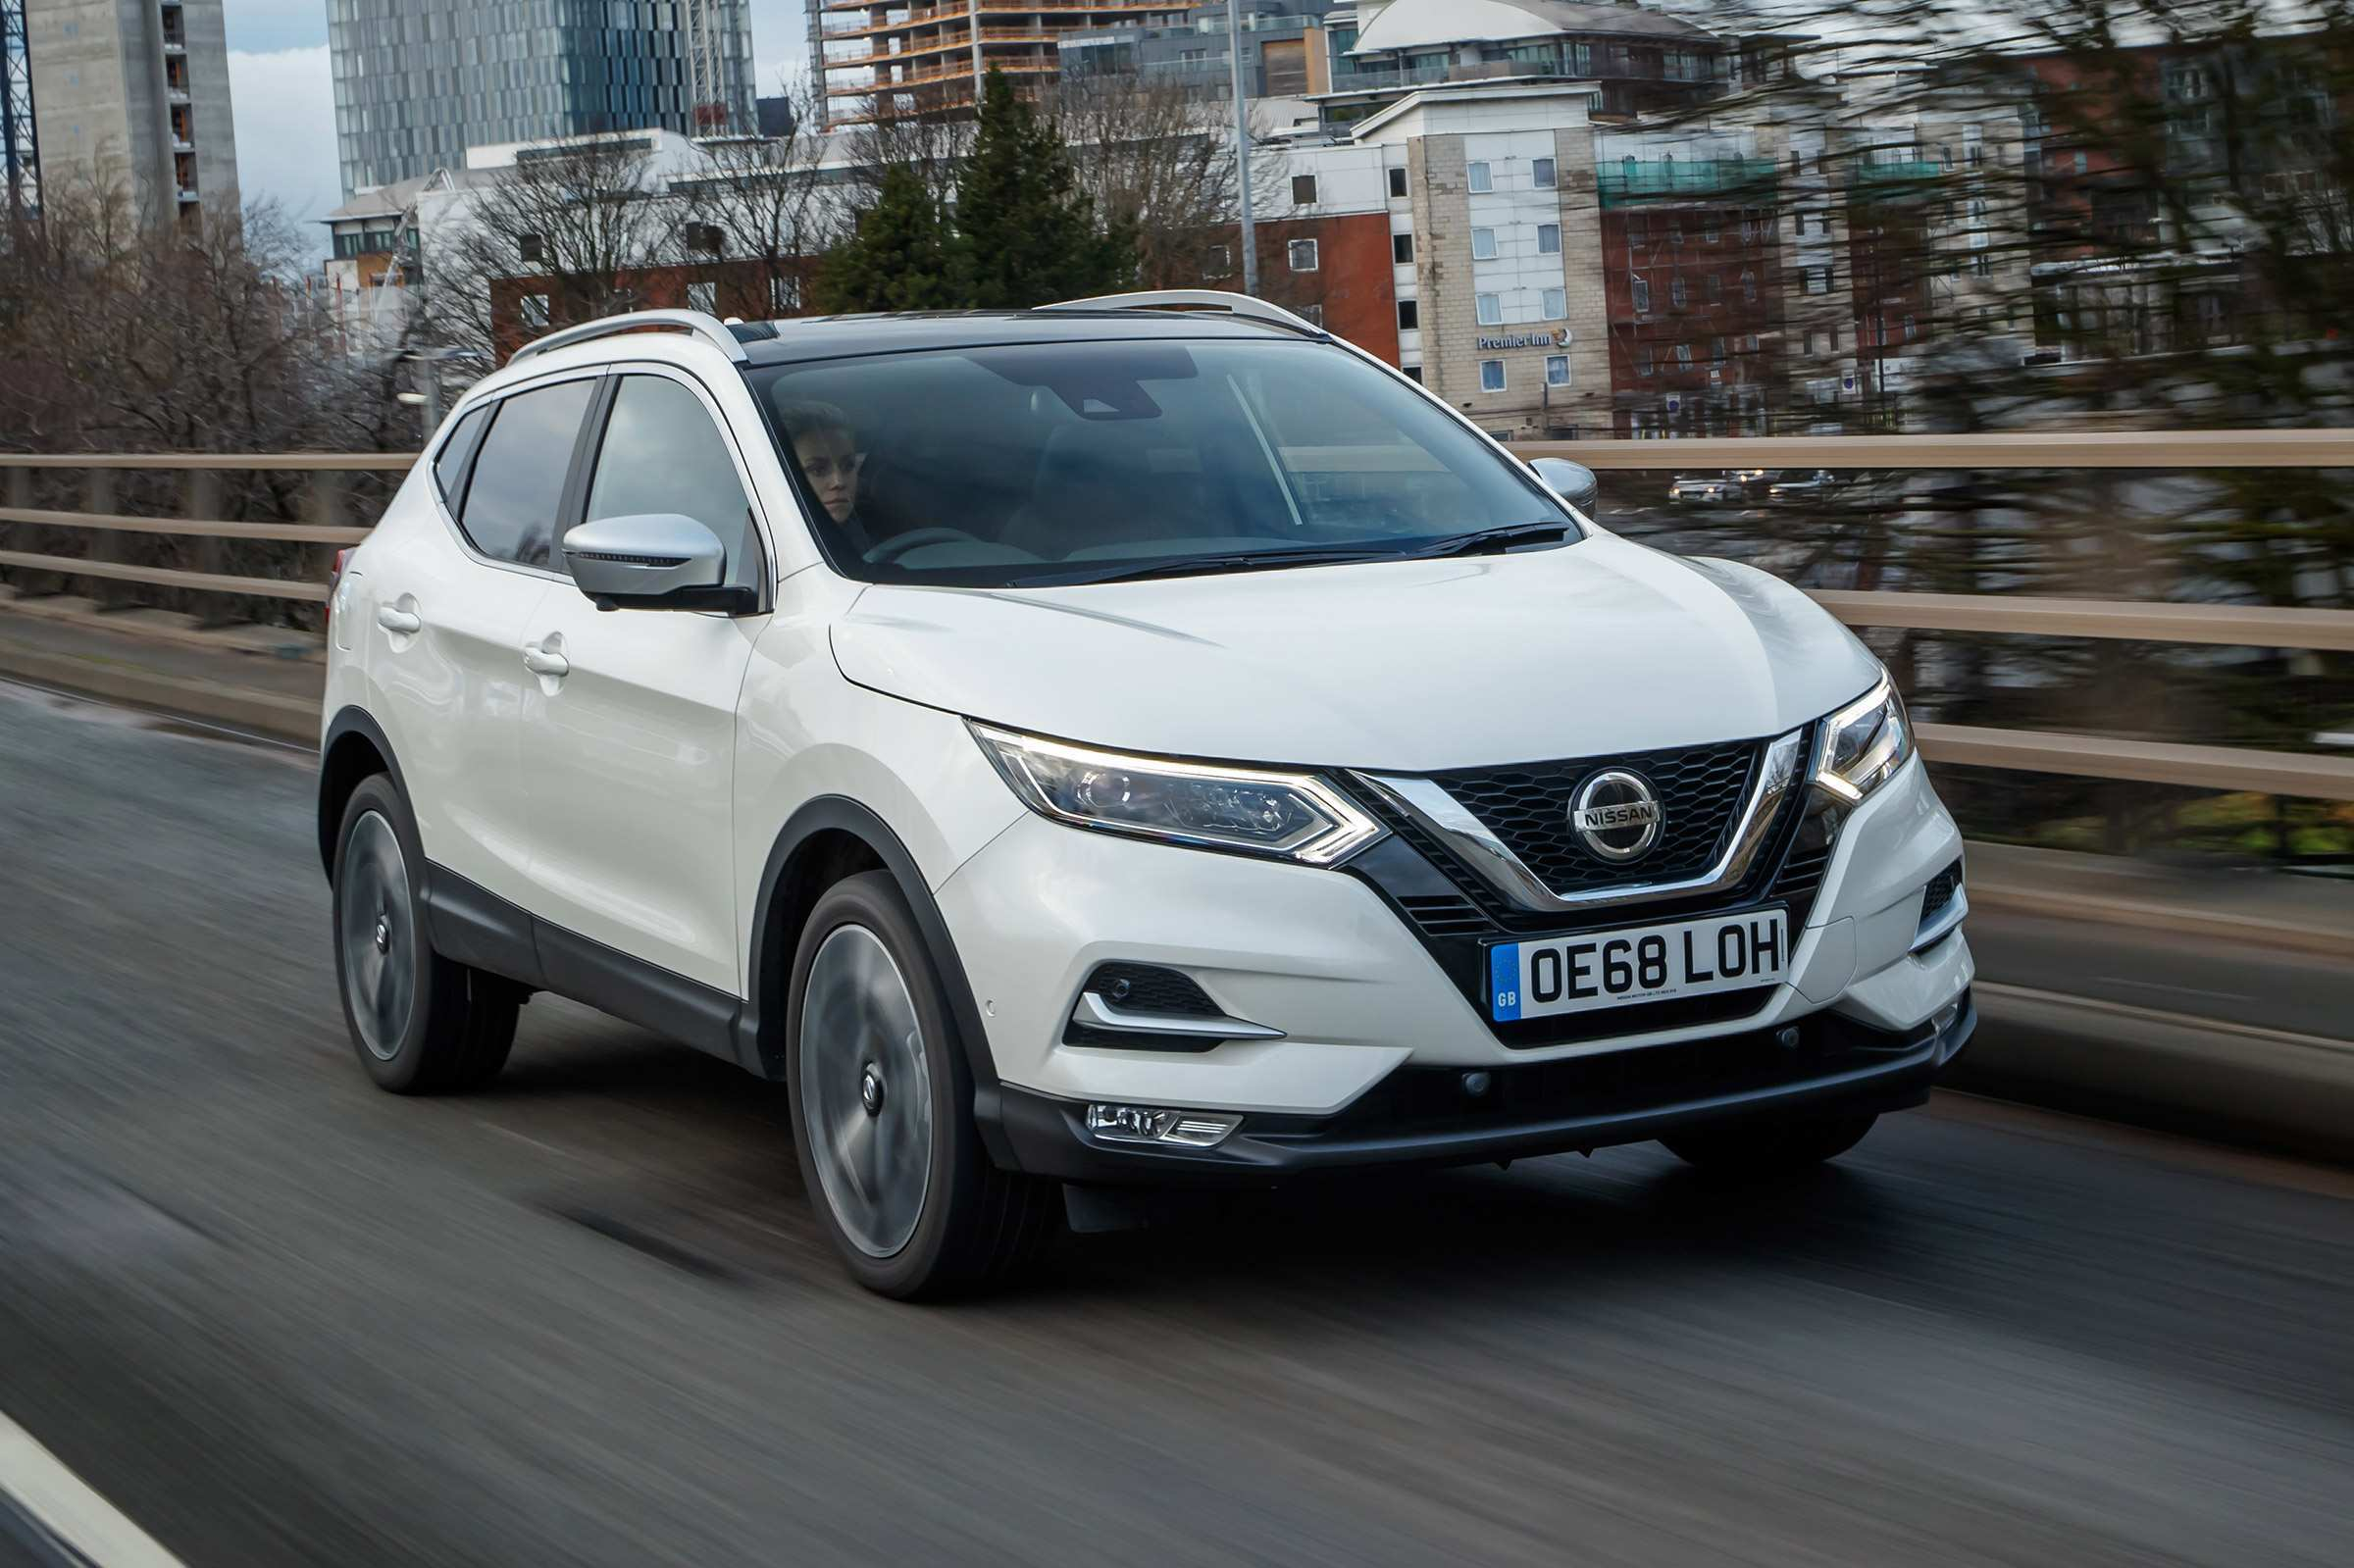 72 Gallery of New Nissan 2019 Lineup New Engine First Drive with New Nissan 2019 Lineup New Engine